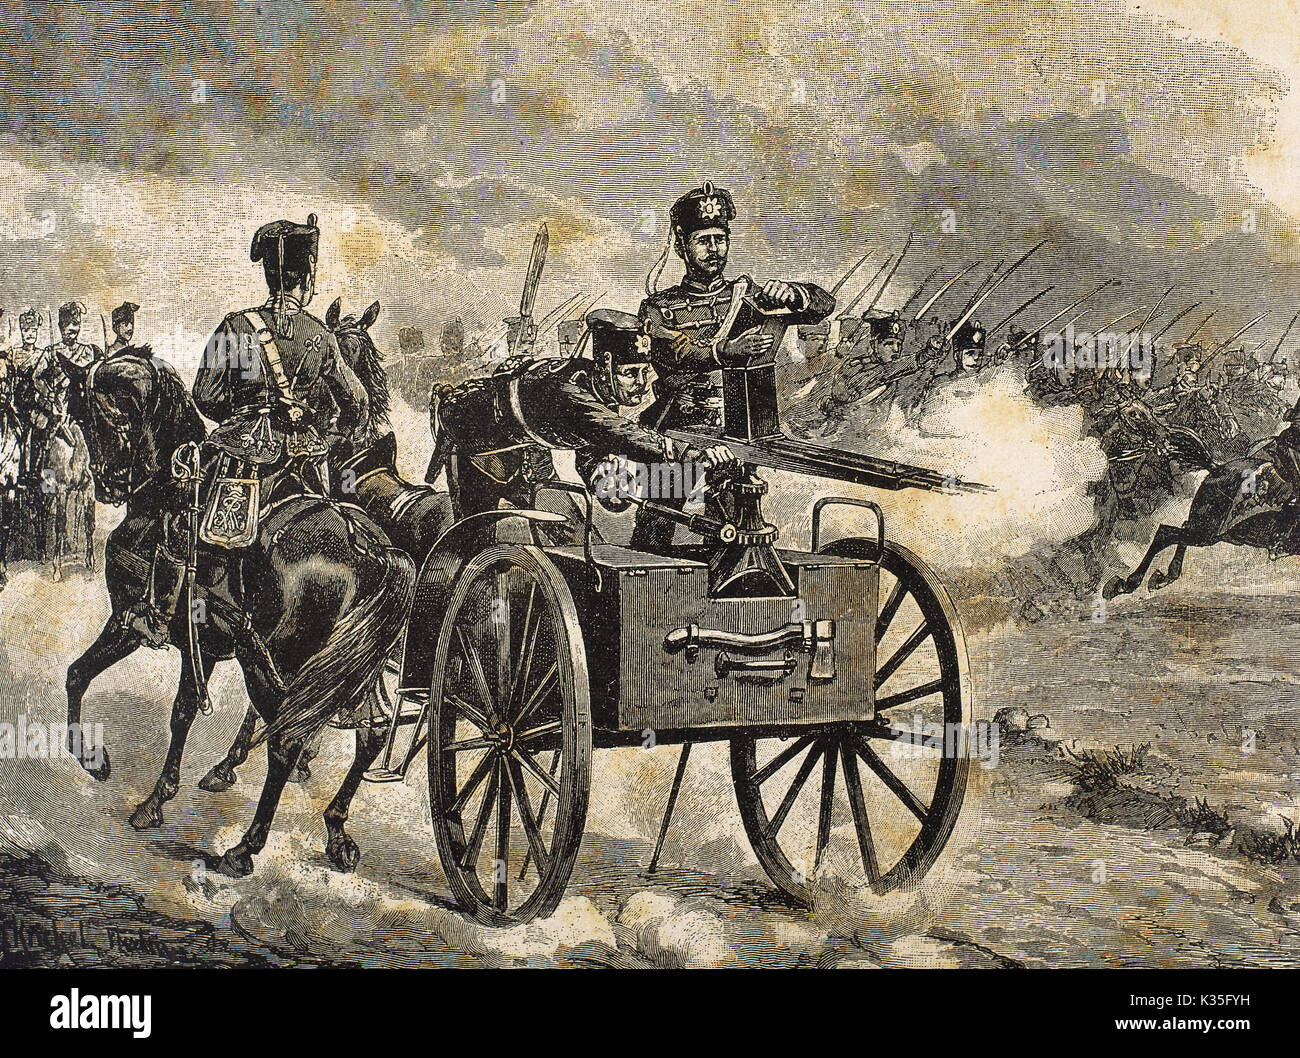 Franco-Prussian War (1870-1871). Troops of the Prussian Guard. Engraving. 'La Ilustracion', 1870. - Stock Image